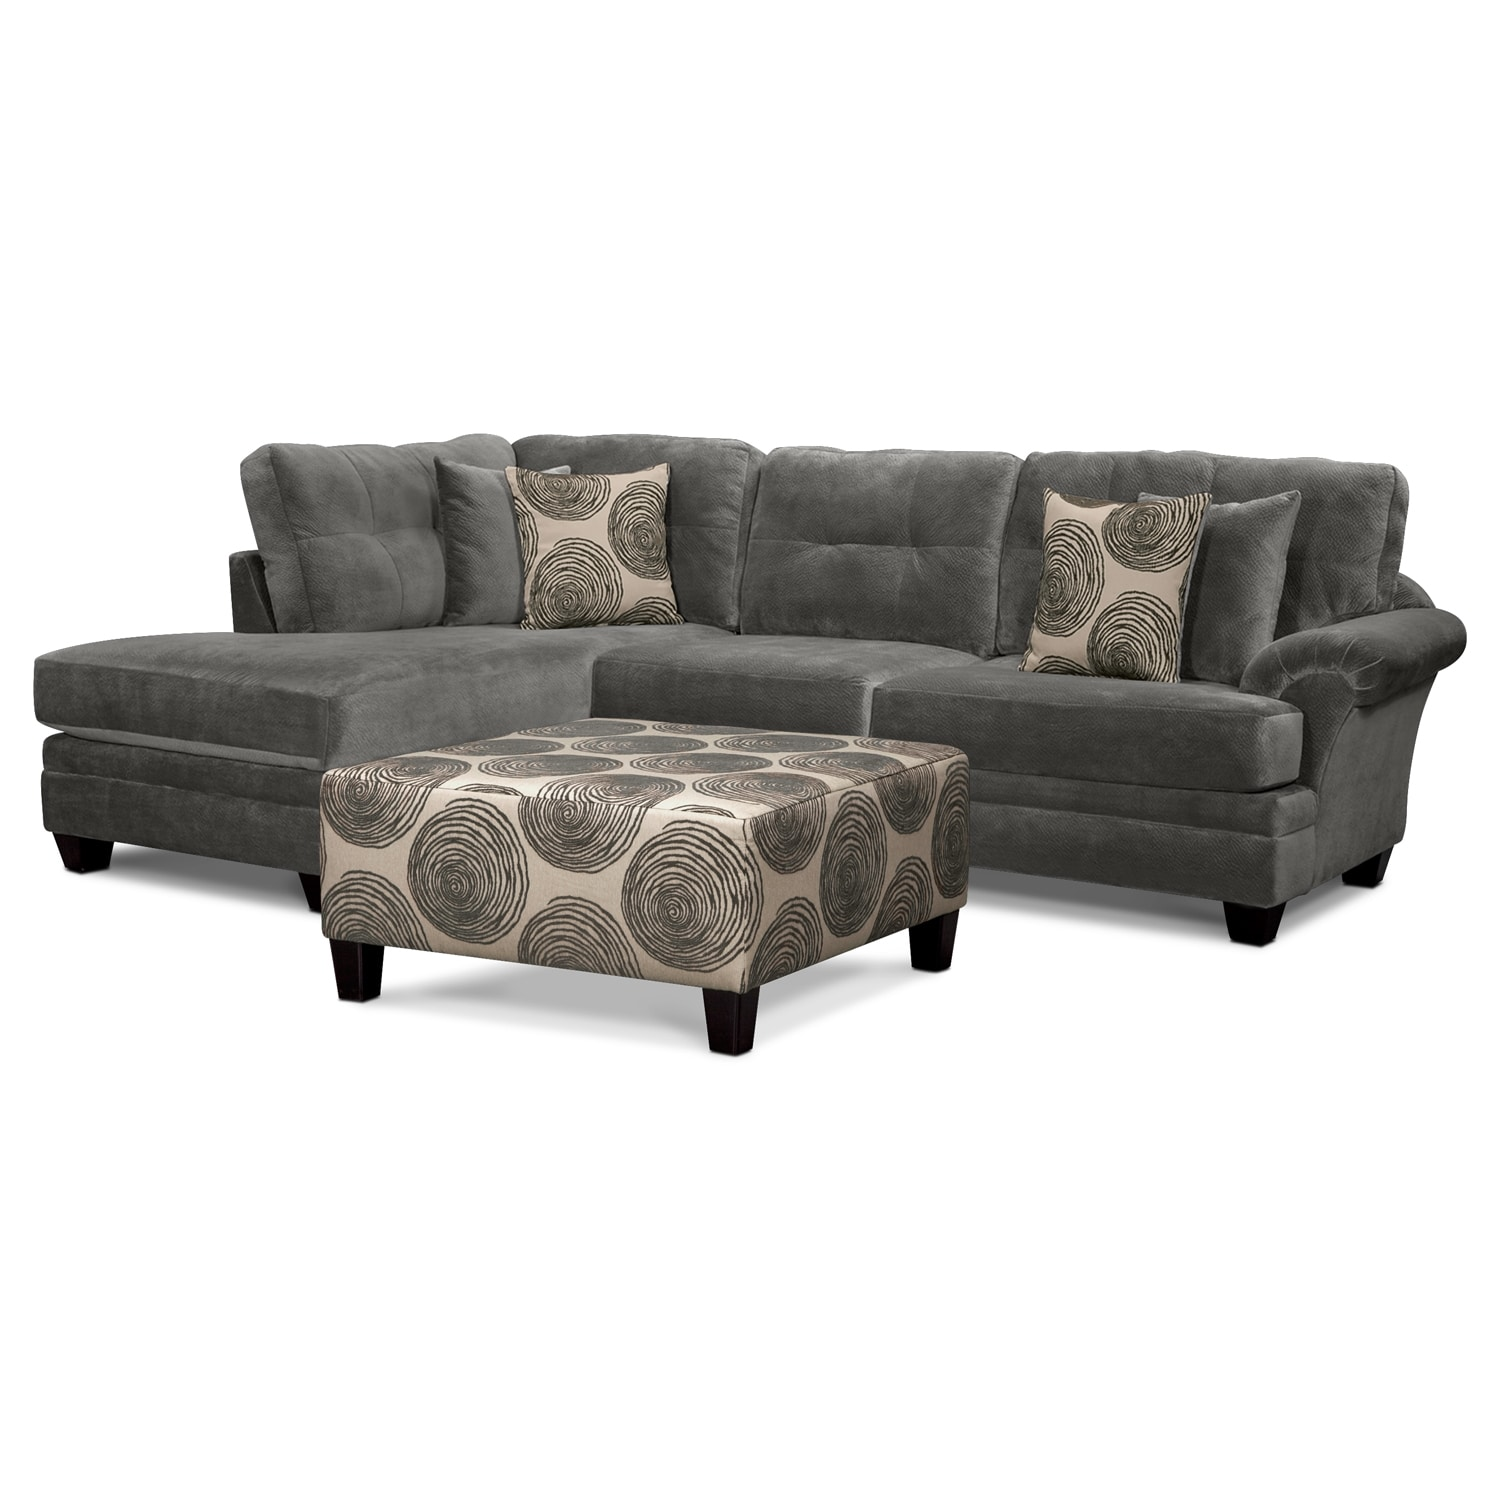 Living Room Furniture - Cordelle 2-Piece Left-Facing Chaise Sectional and Cocktail Ottoman Set - Gray